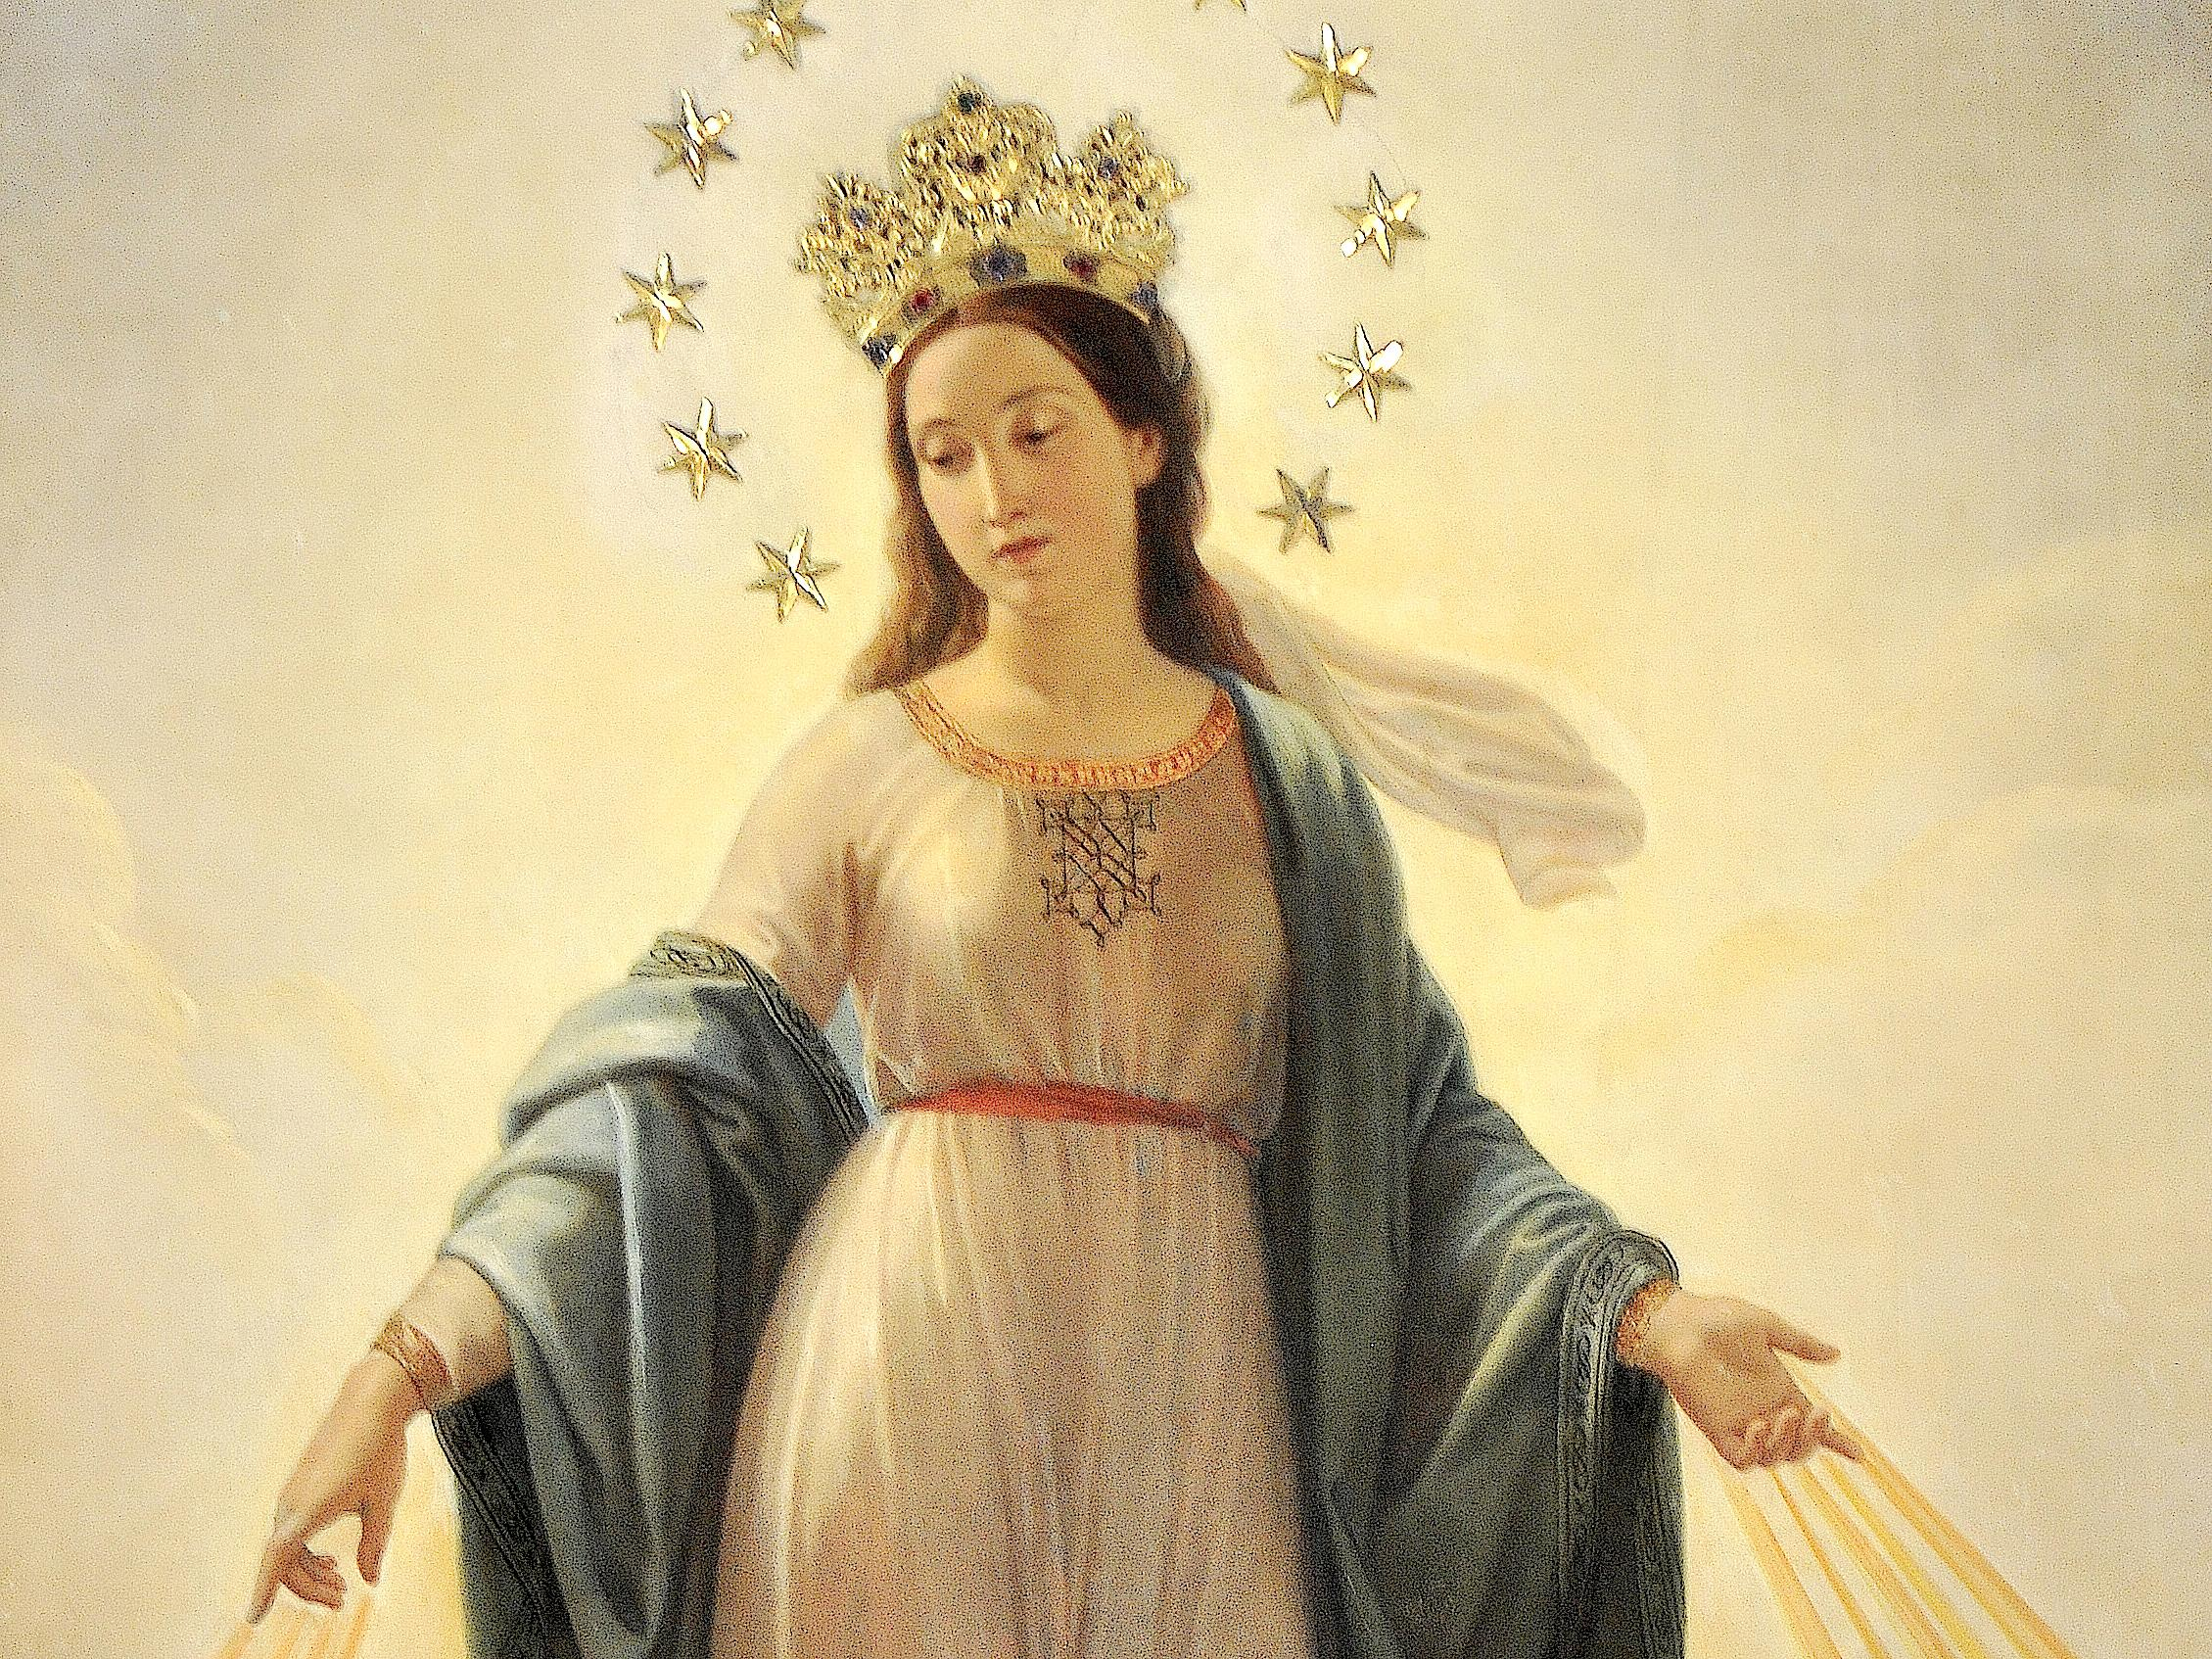 Our Lady of Miracles - Madonna del Miracolo